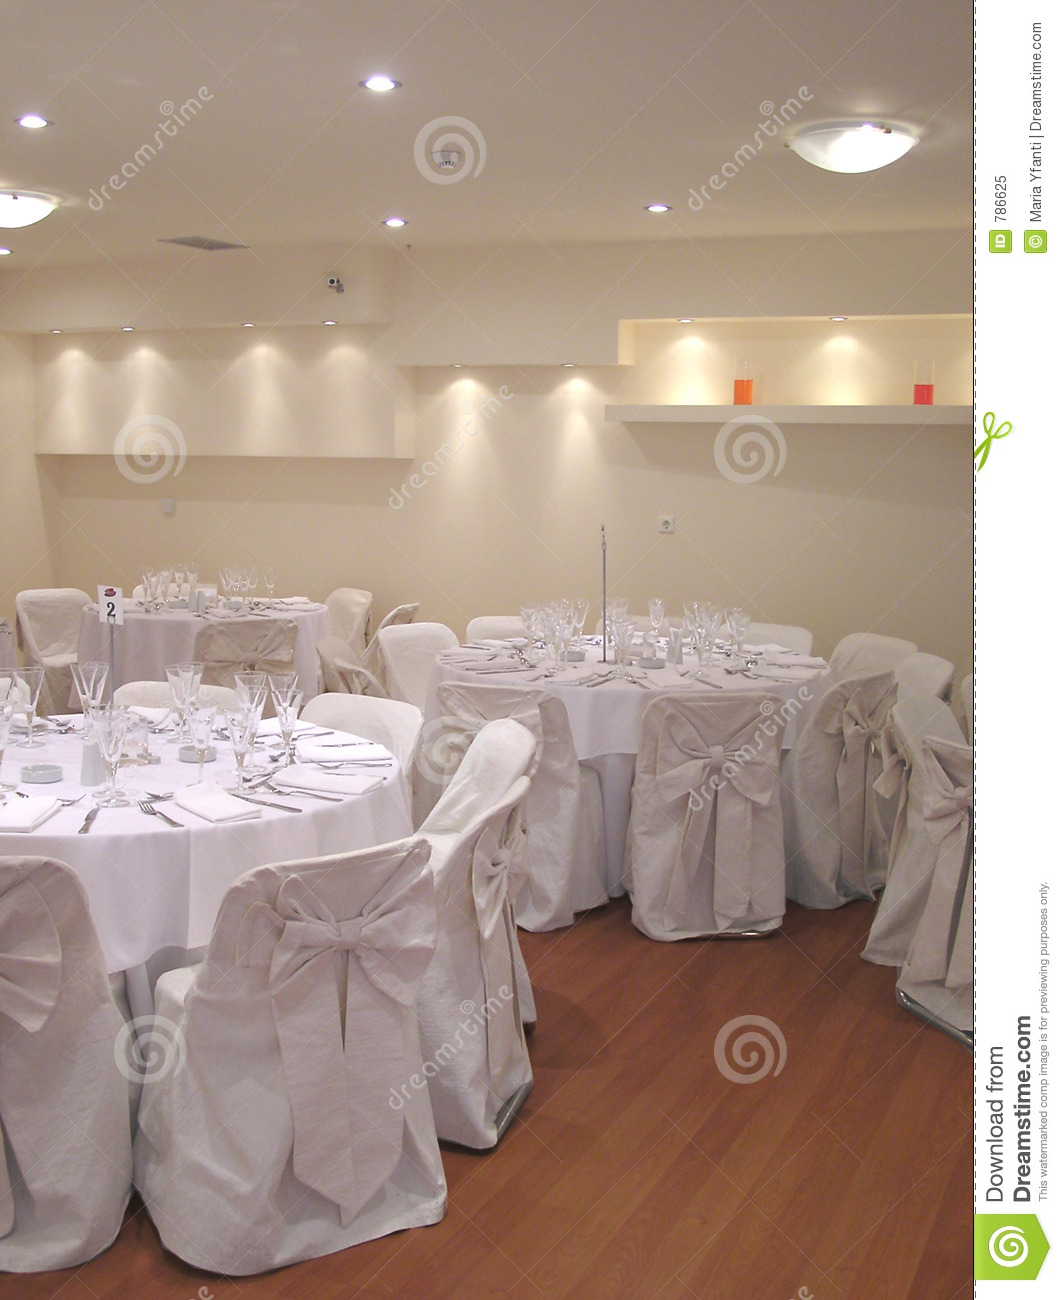 Indoor Wedding Reception Ideas: Wedding Reception Indoor Stock Image. Image Of Tables